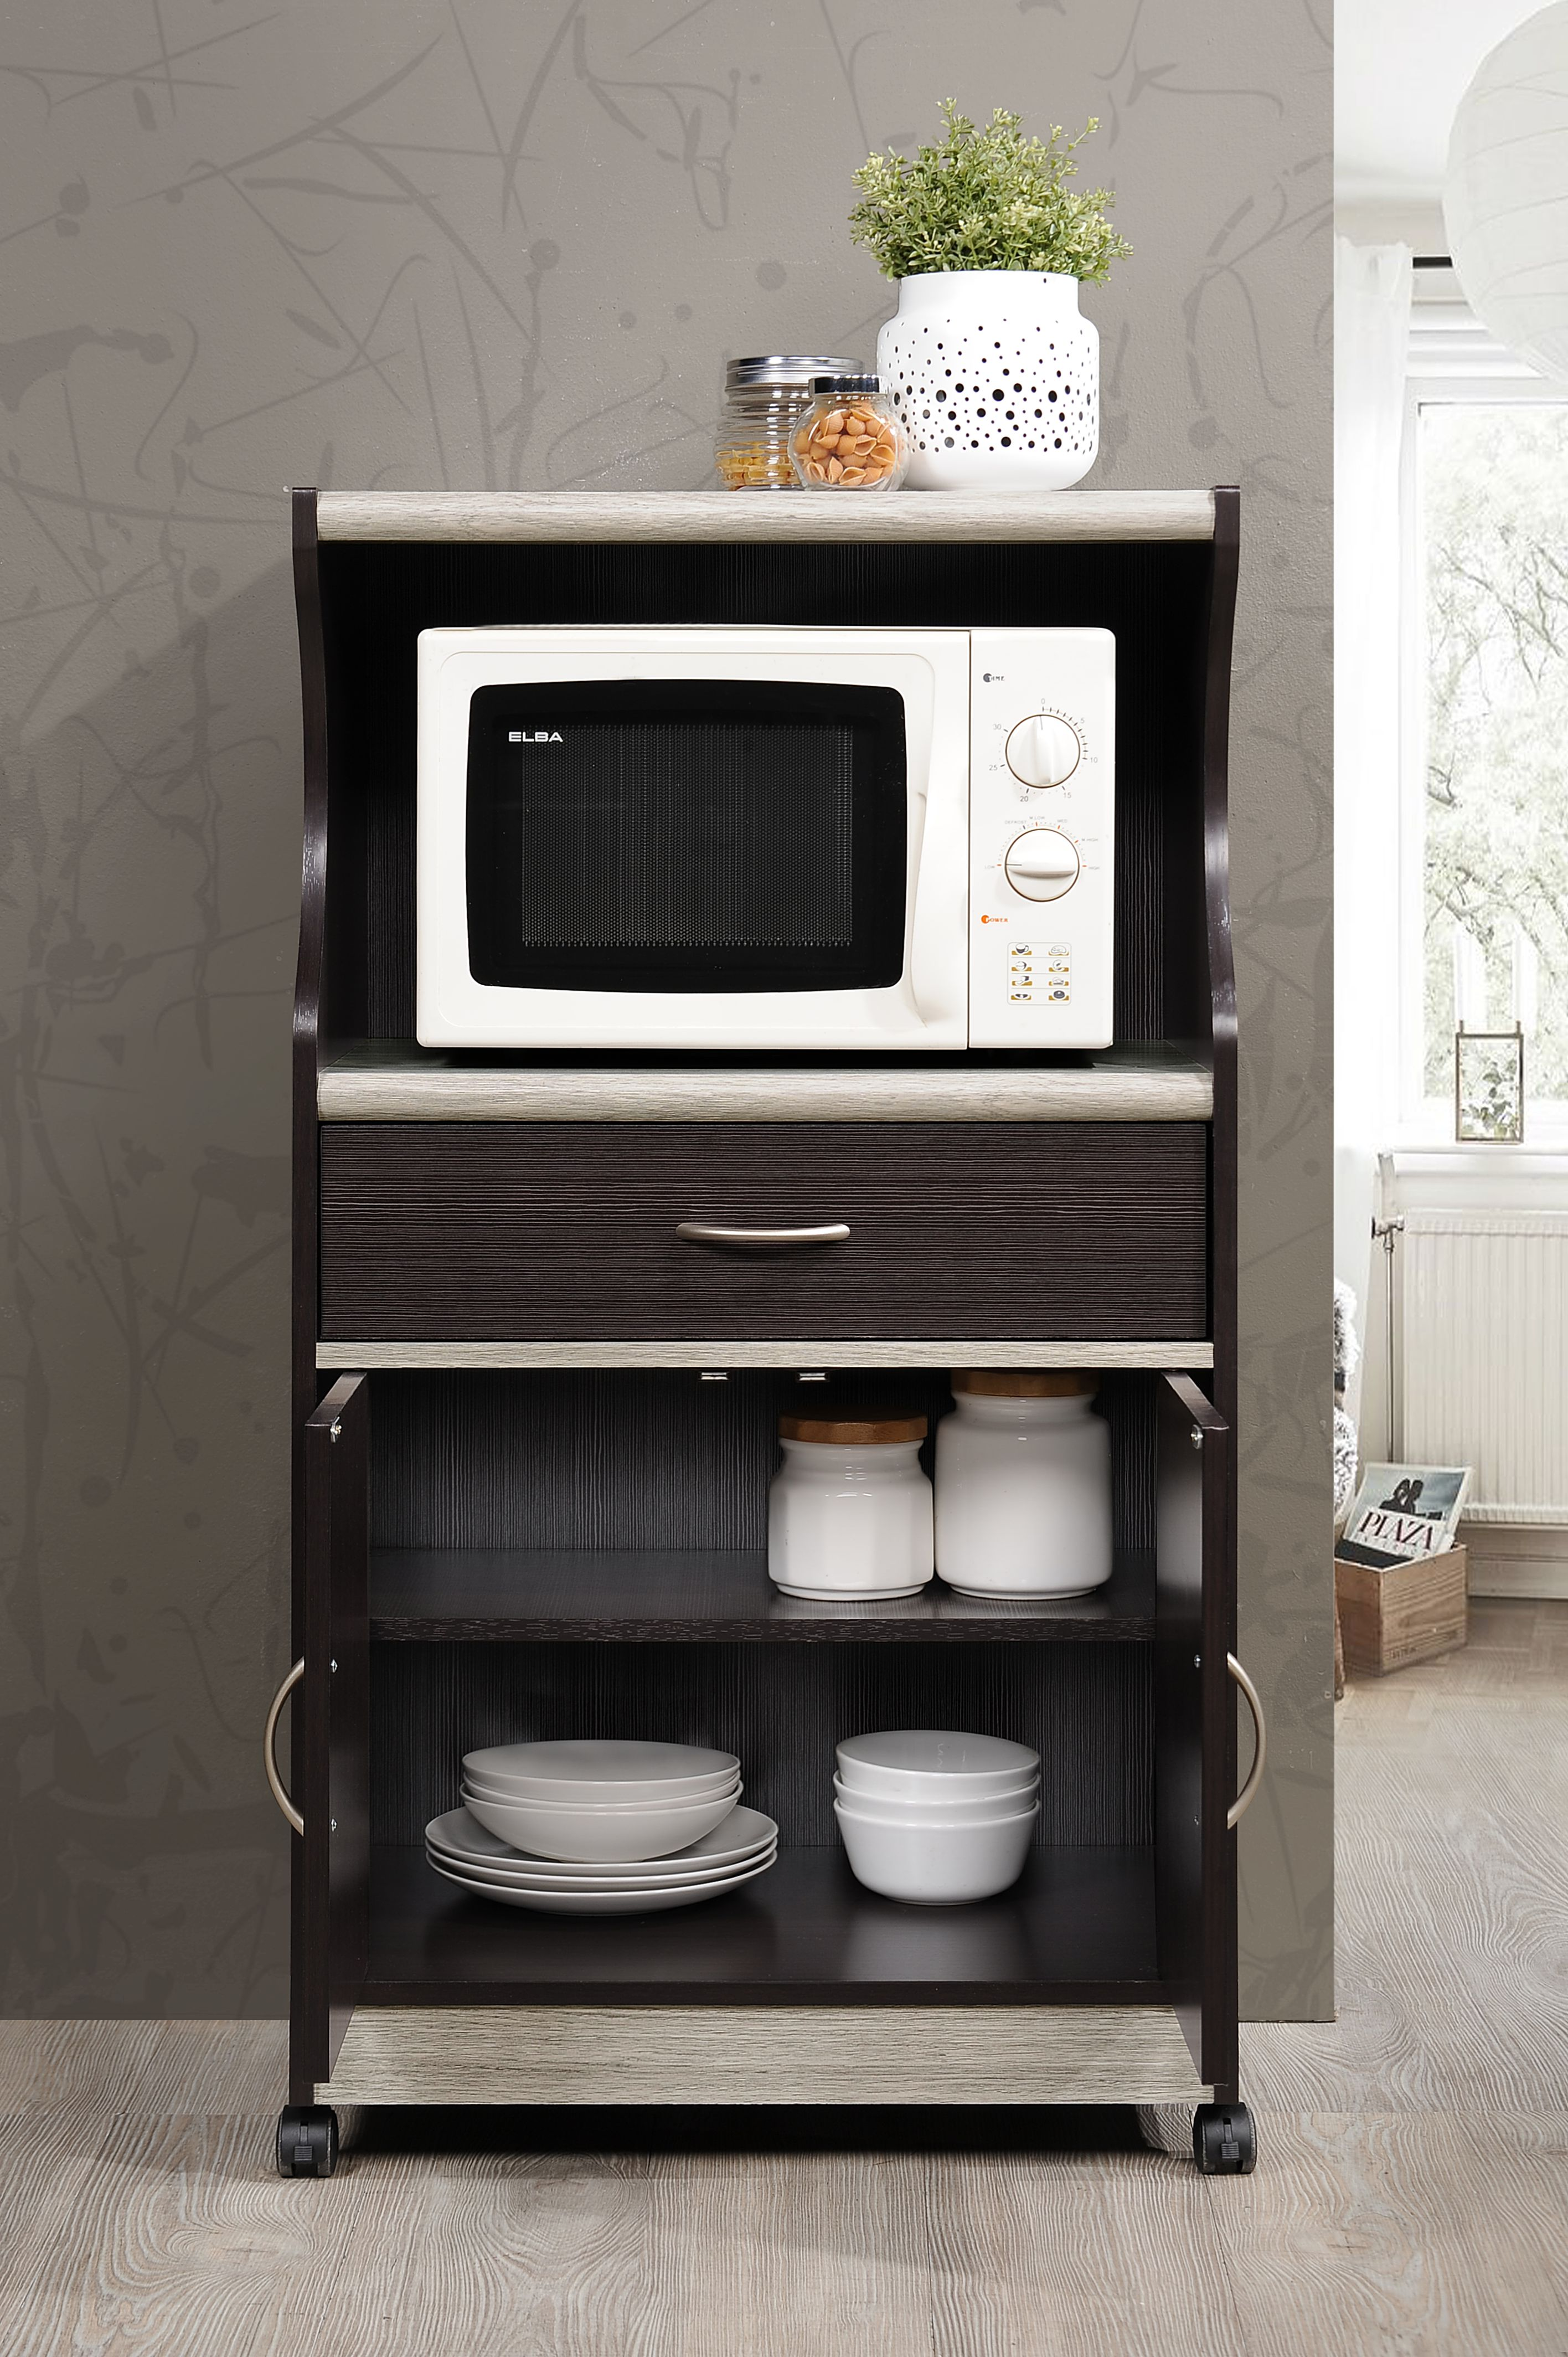 Microwave Stands Shelves And Storage